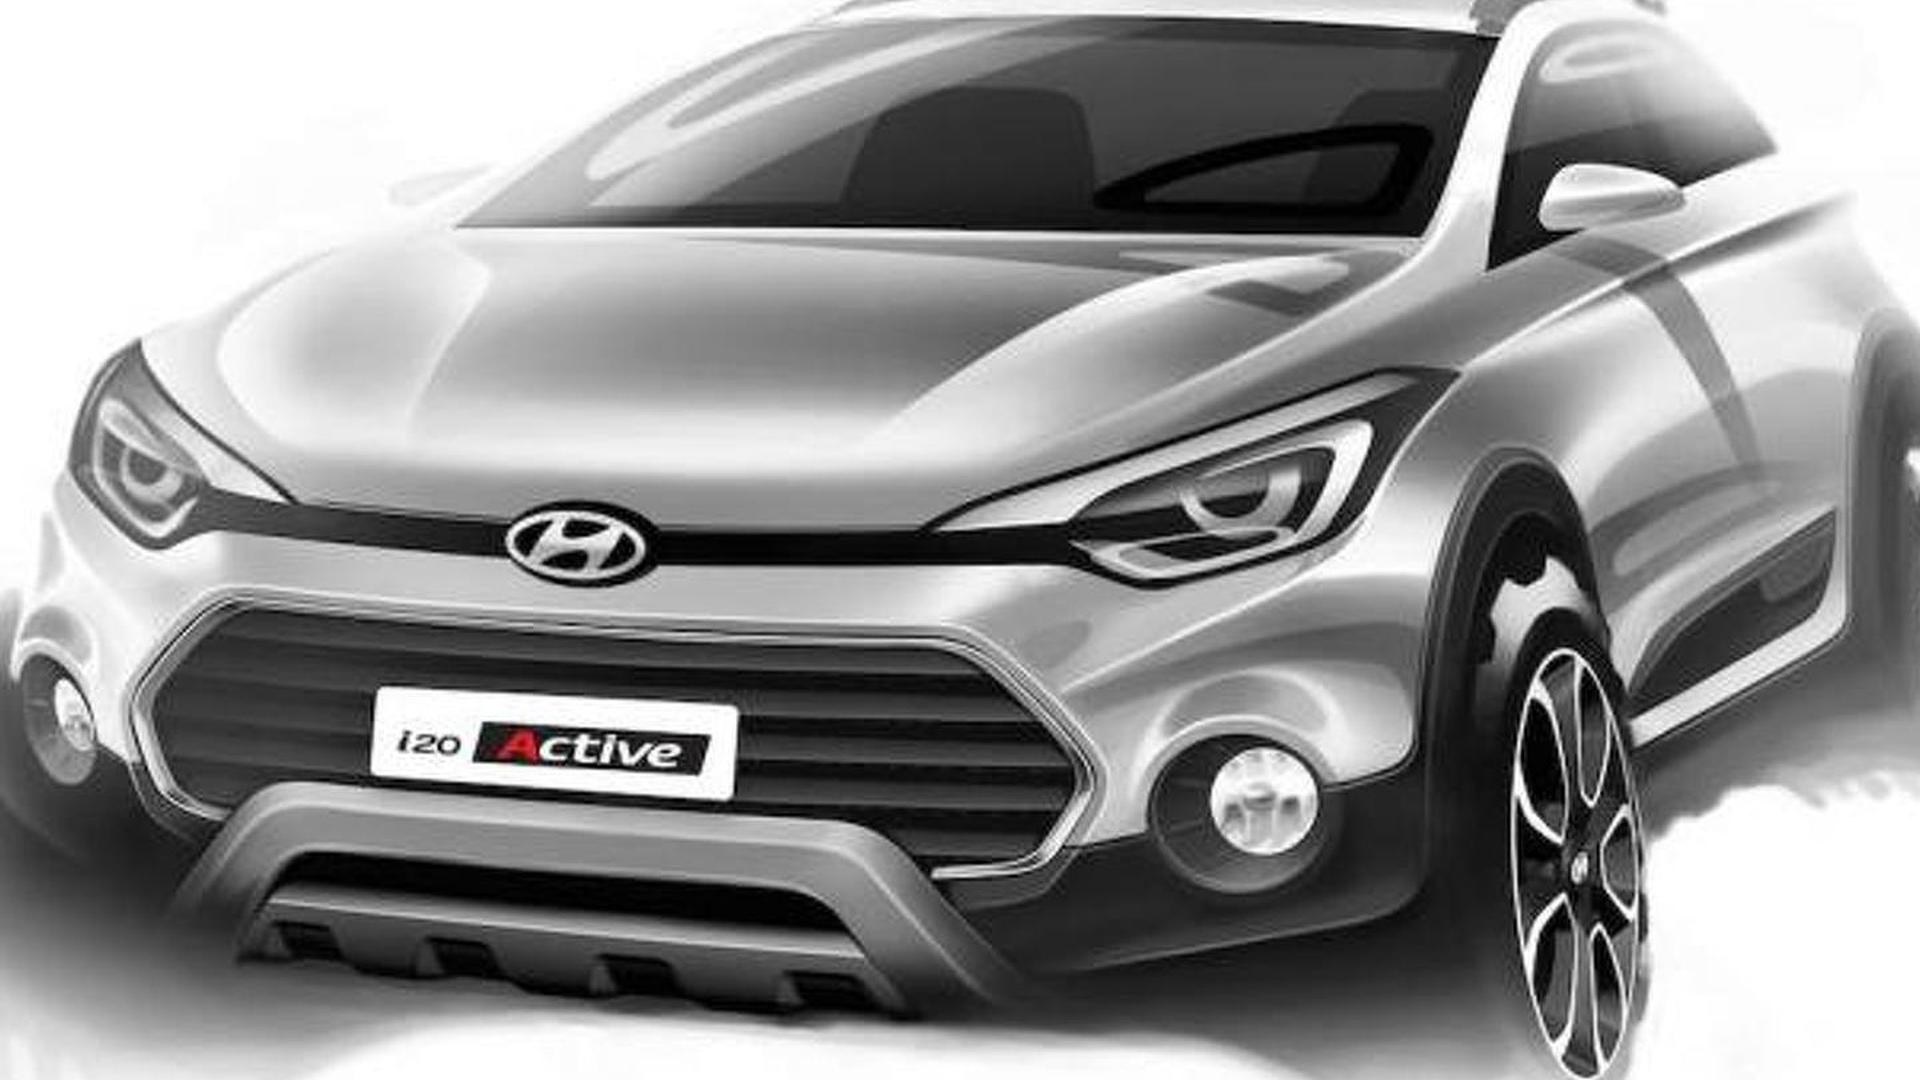 Hyundai i20 Active previewed in official design sketches